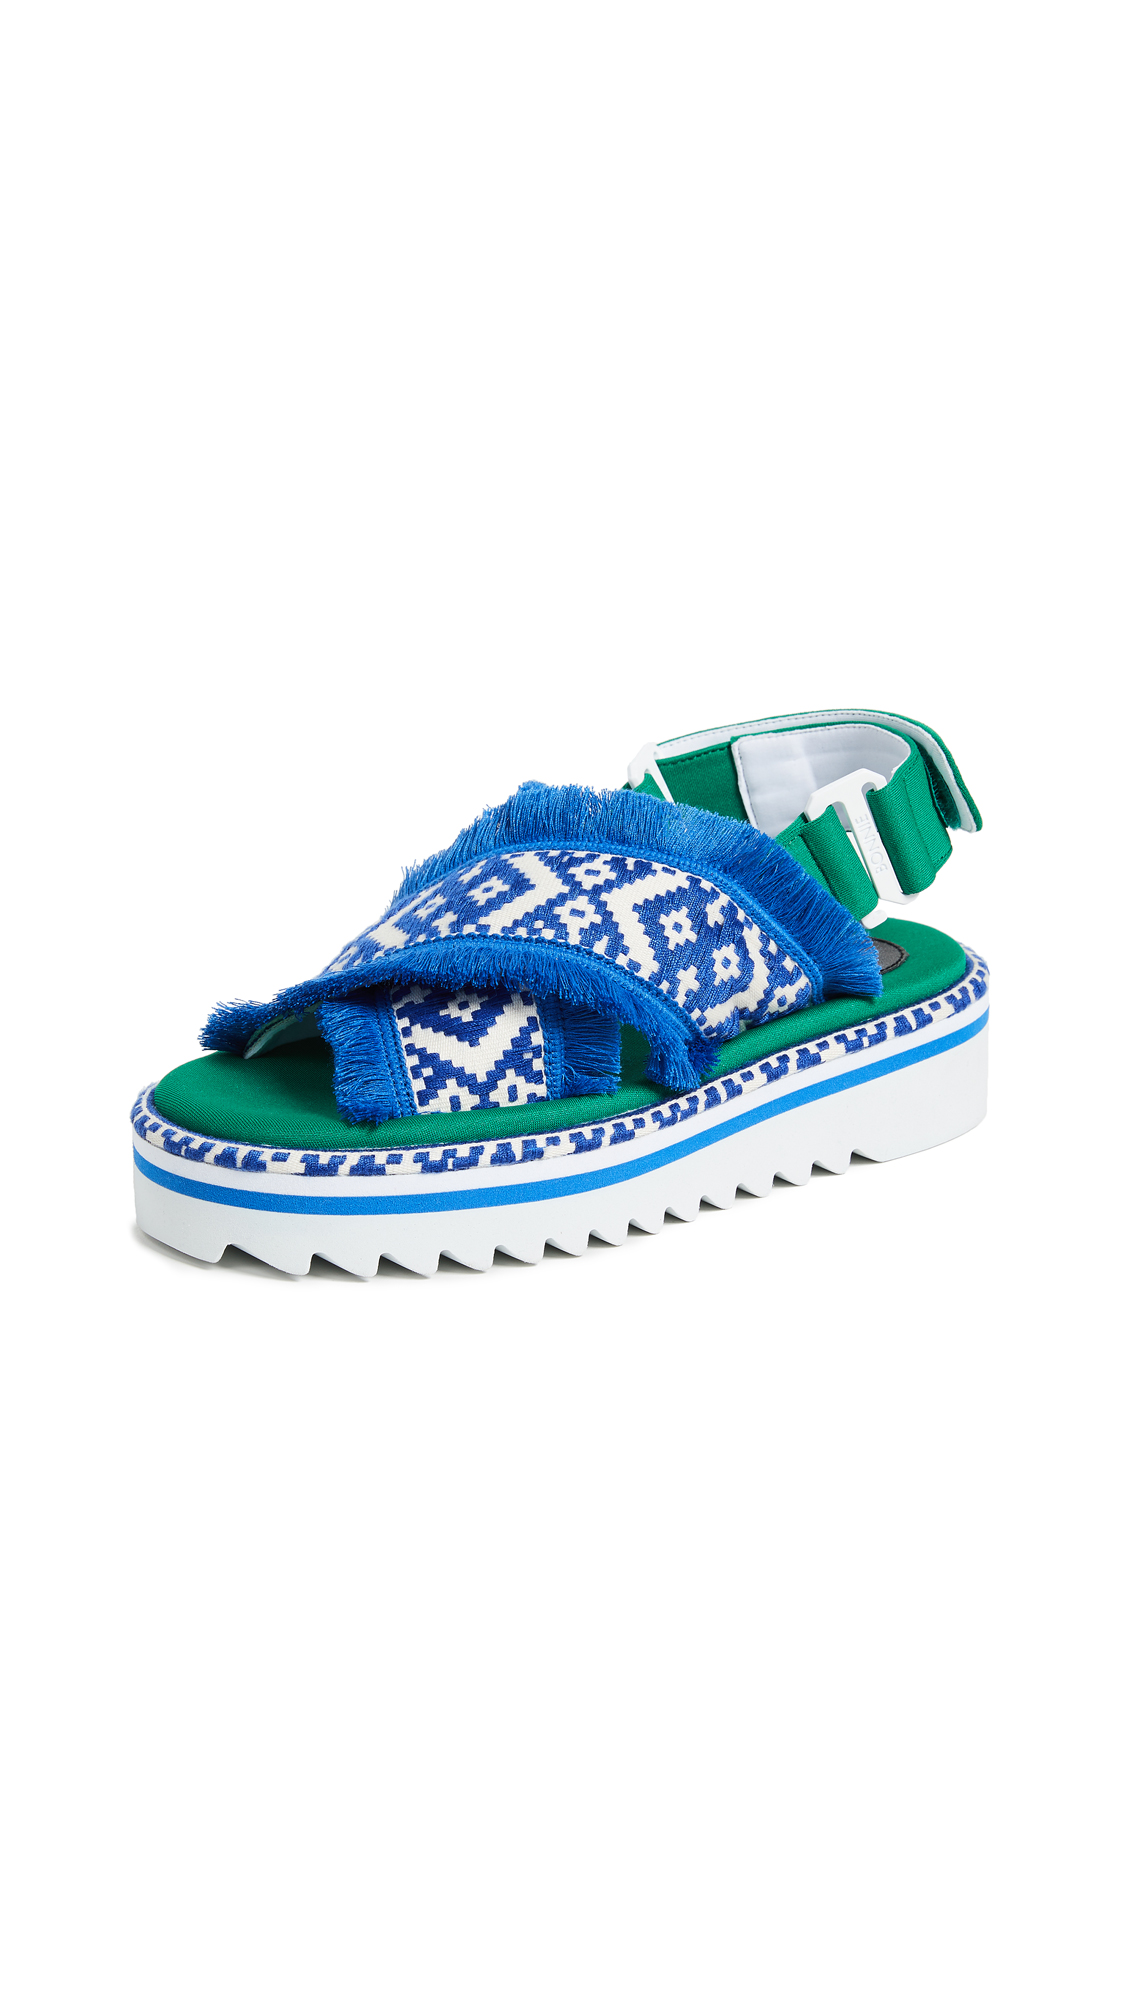 Suecomma Bonnie Ethnic Platform Sandals - Blue